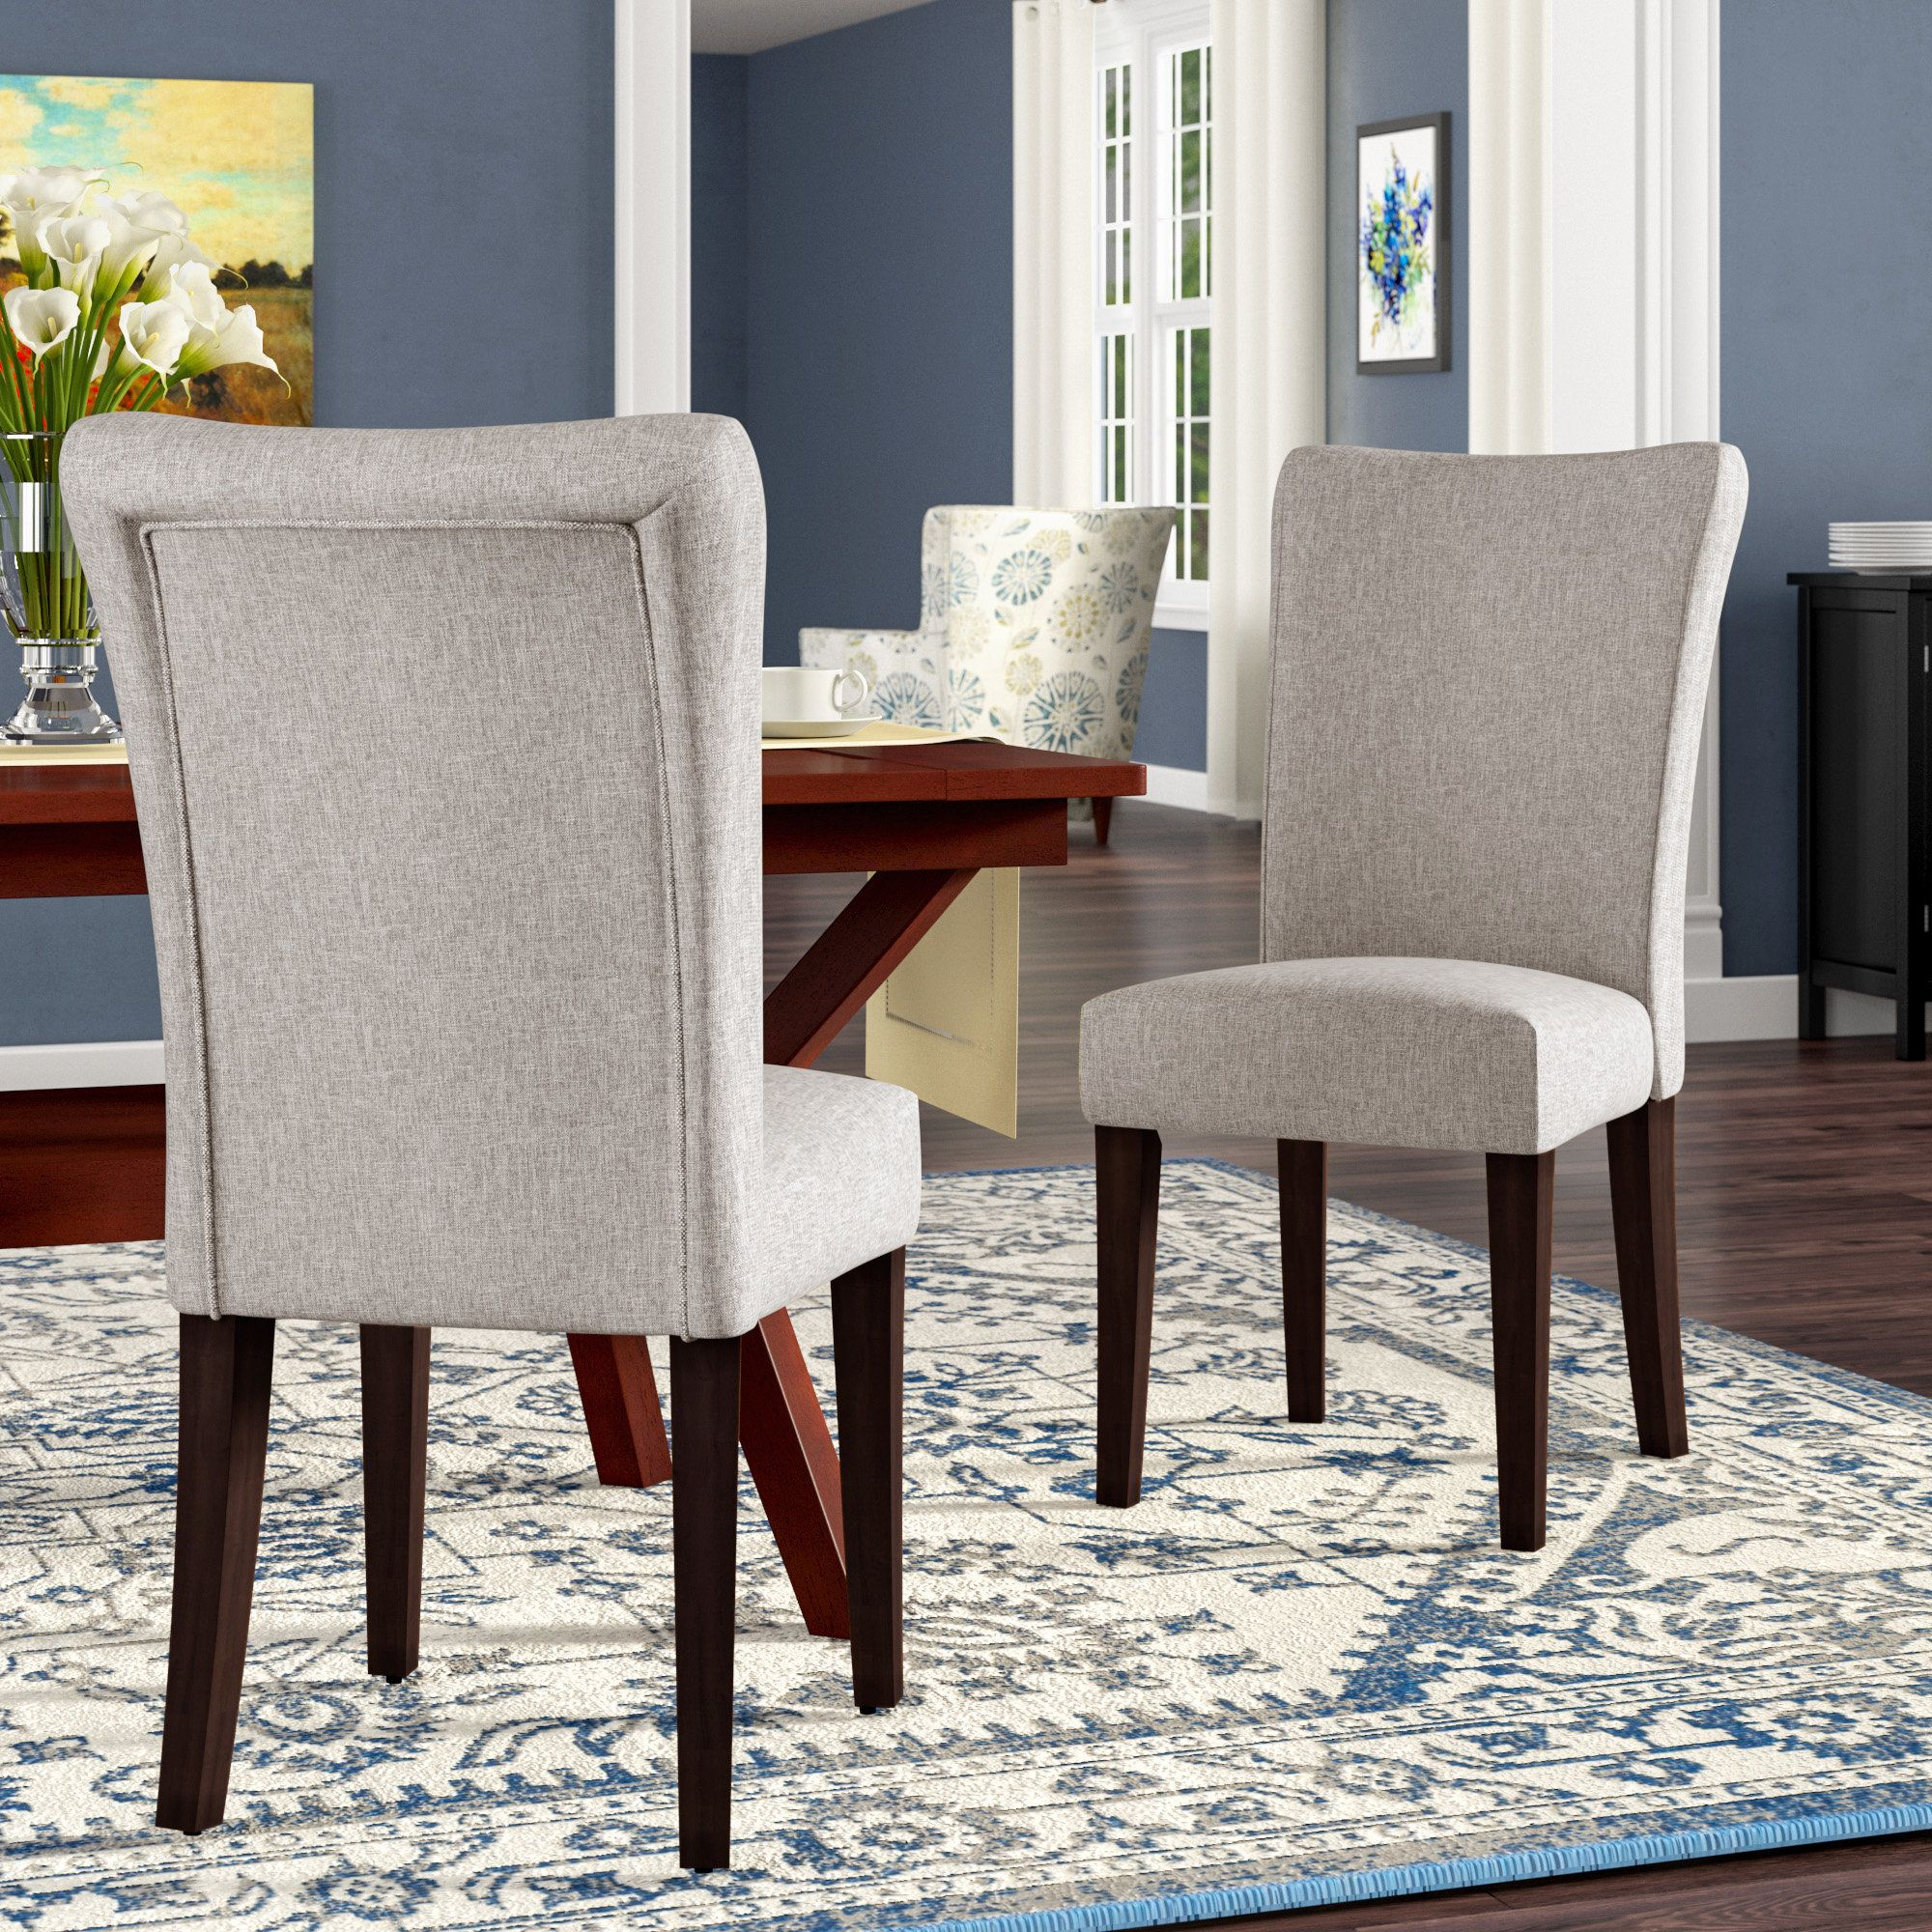 Lancaster Upholstered Dining Chair | Dining Room Chairs In Bob Stripe Upholstered Dining Chairs (Set Of 2) (View 2 of 15)